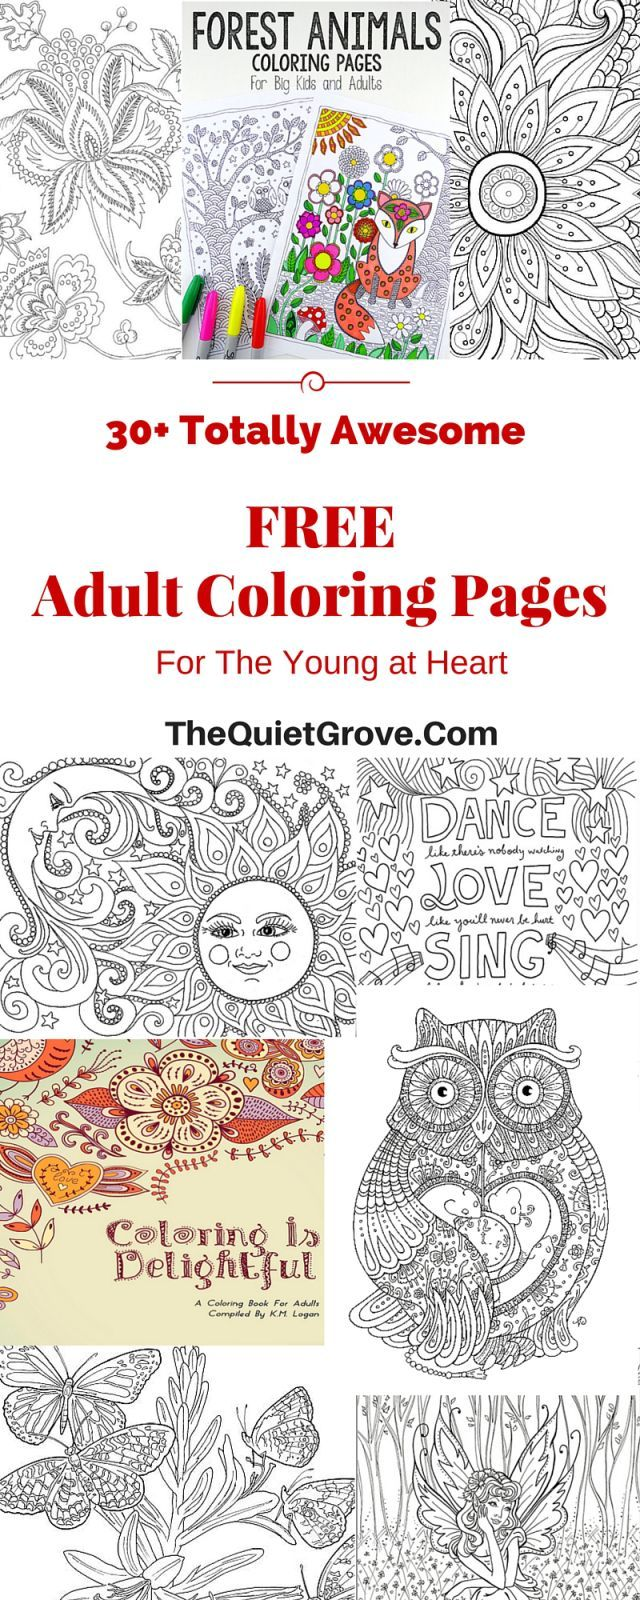 30+ totally awesome Free Adult Coloring Pages | Colorear, Colorin y ...